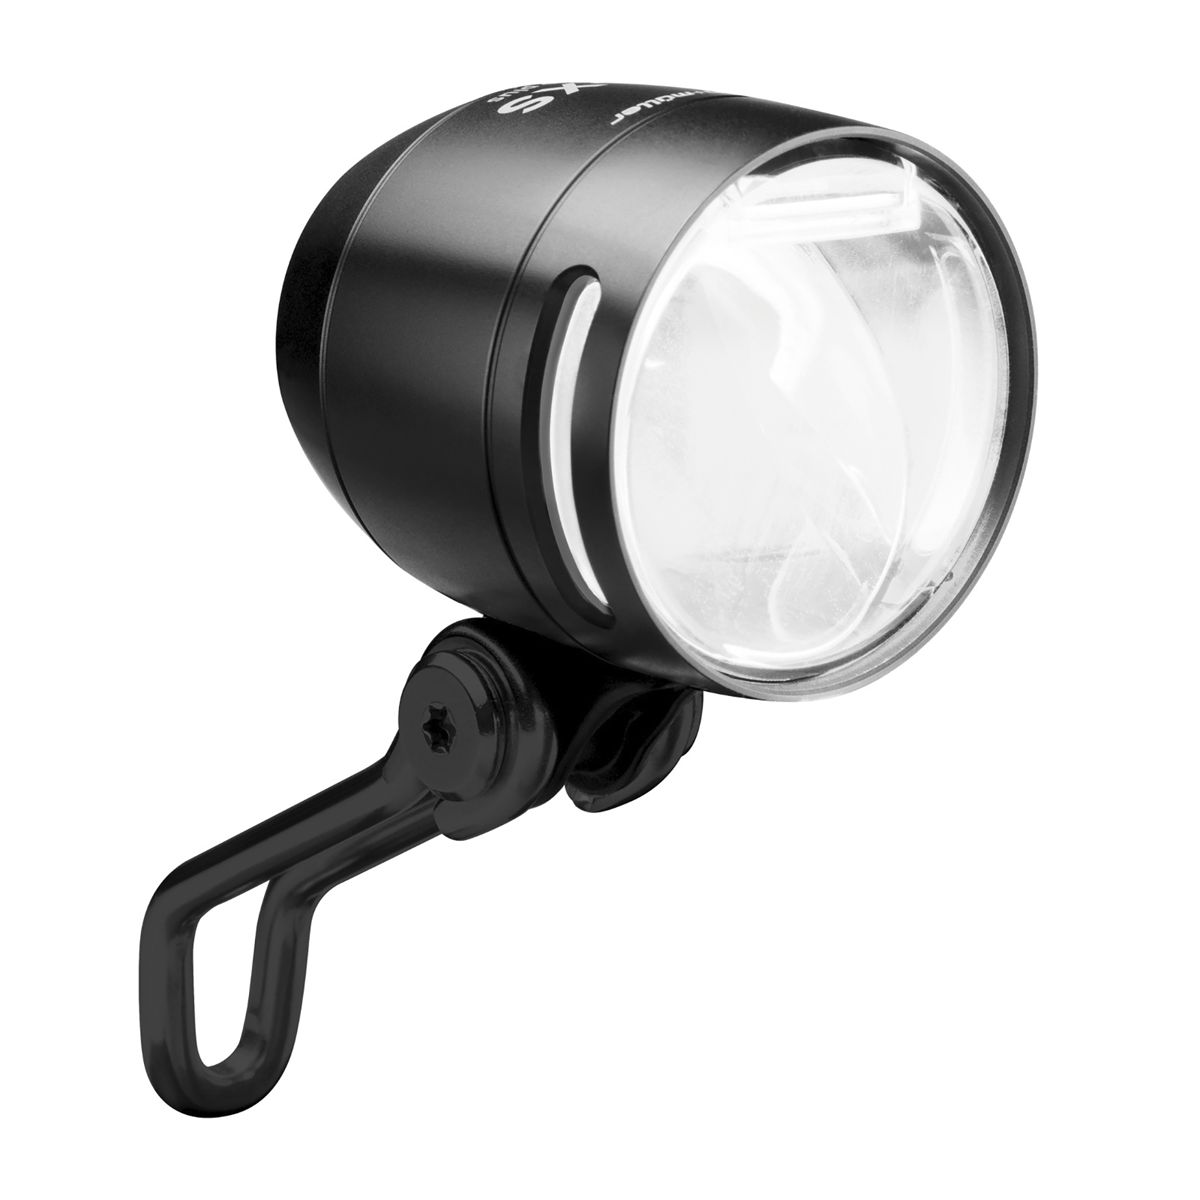 Lumotec IQ-XS dynamo-powered headlight